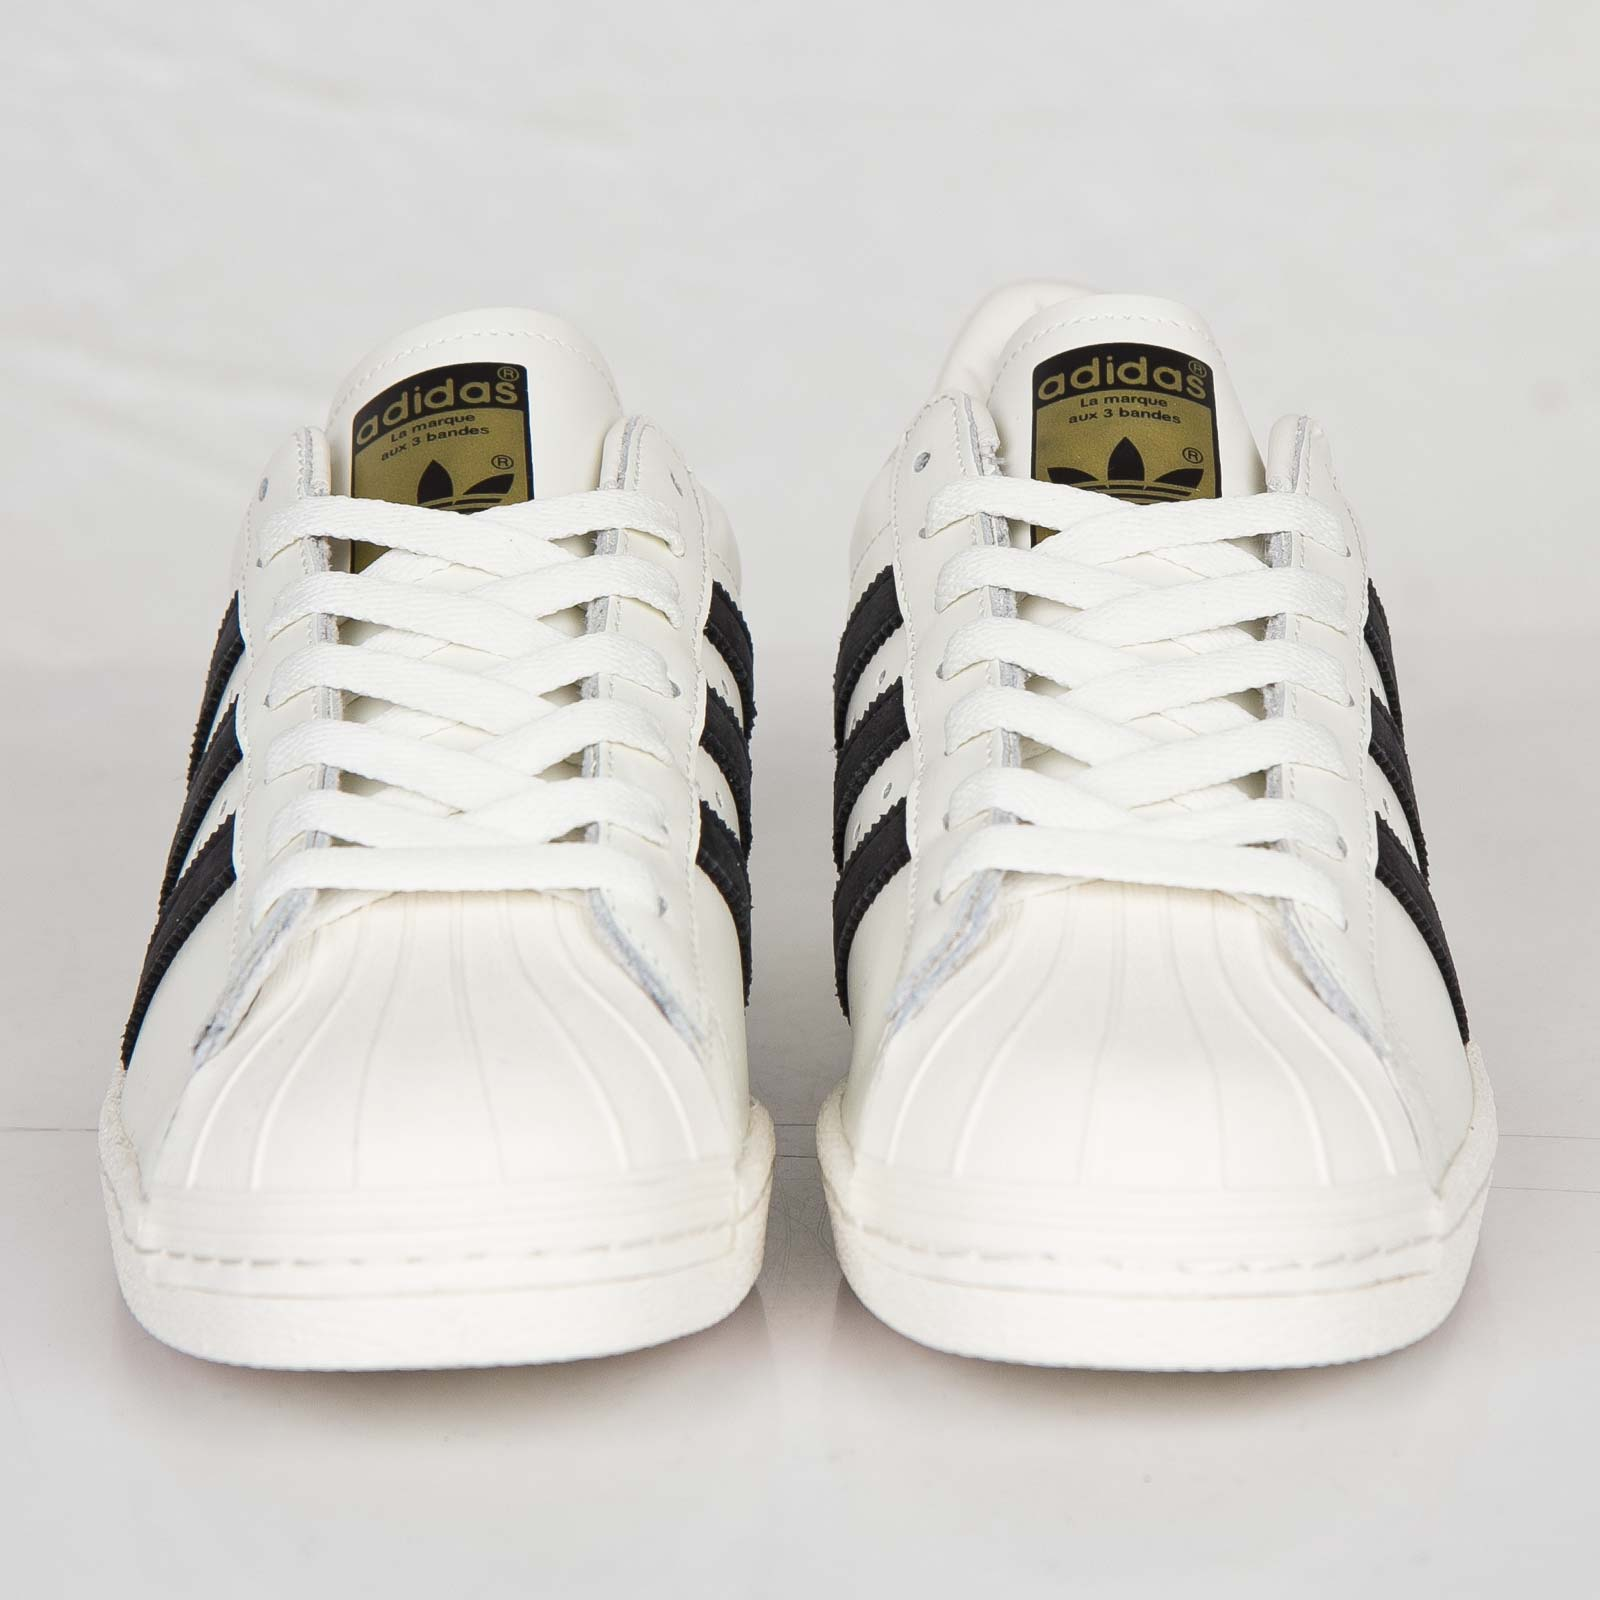 Adidas Superstar 80s svart